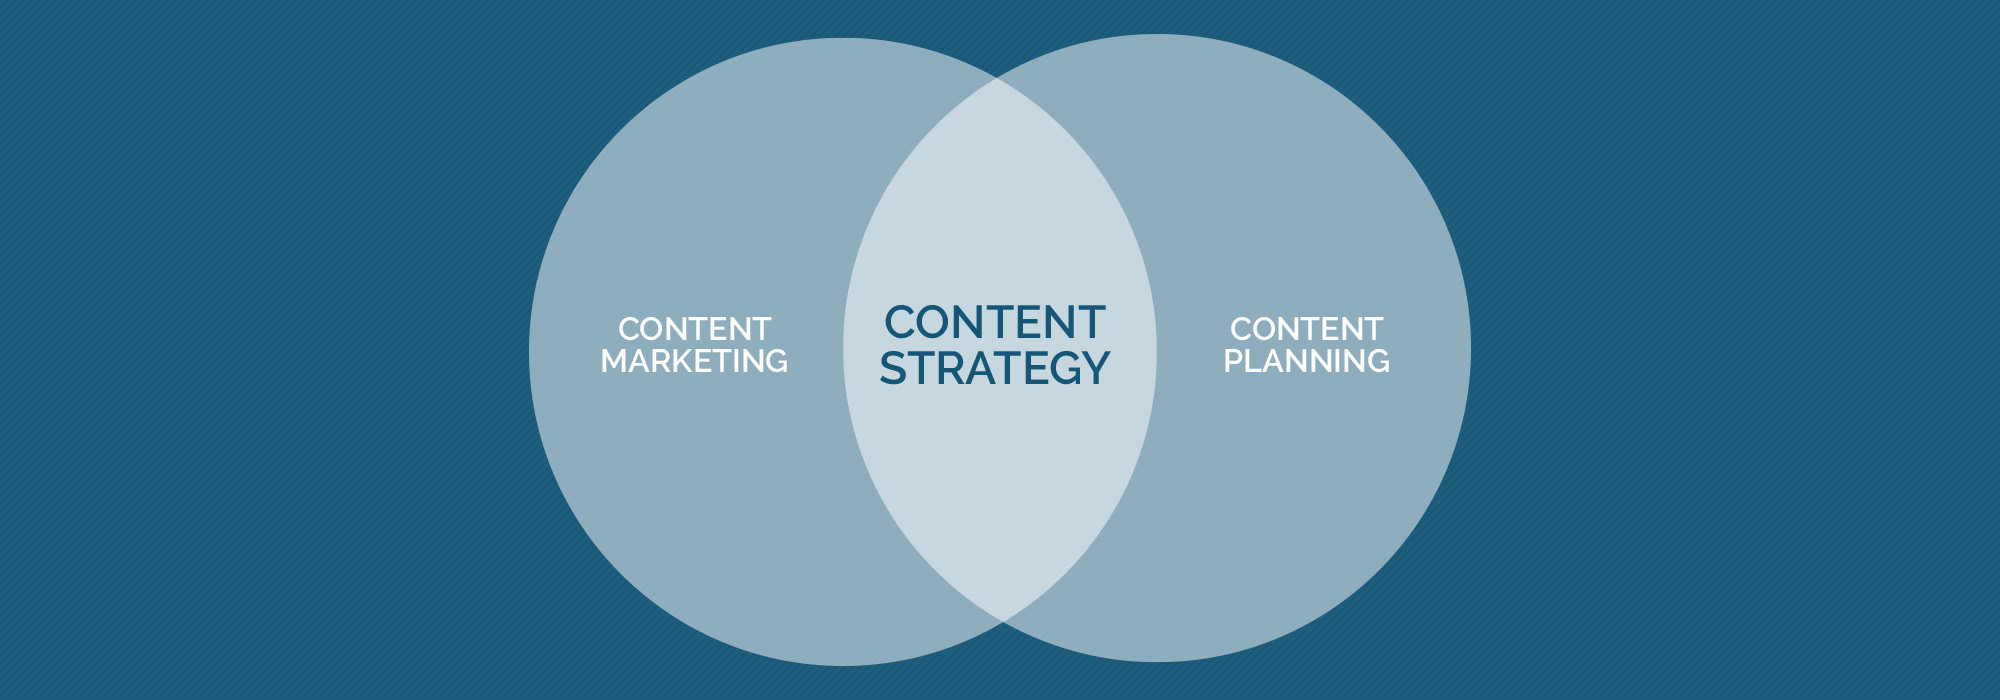 Building an Engaging Content Strategy